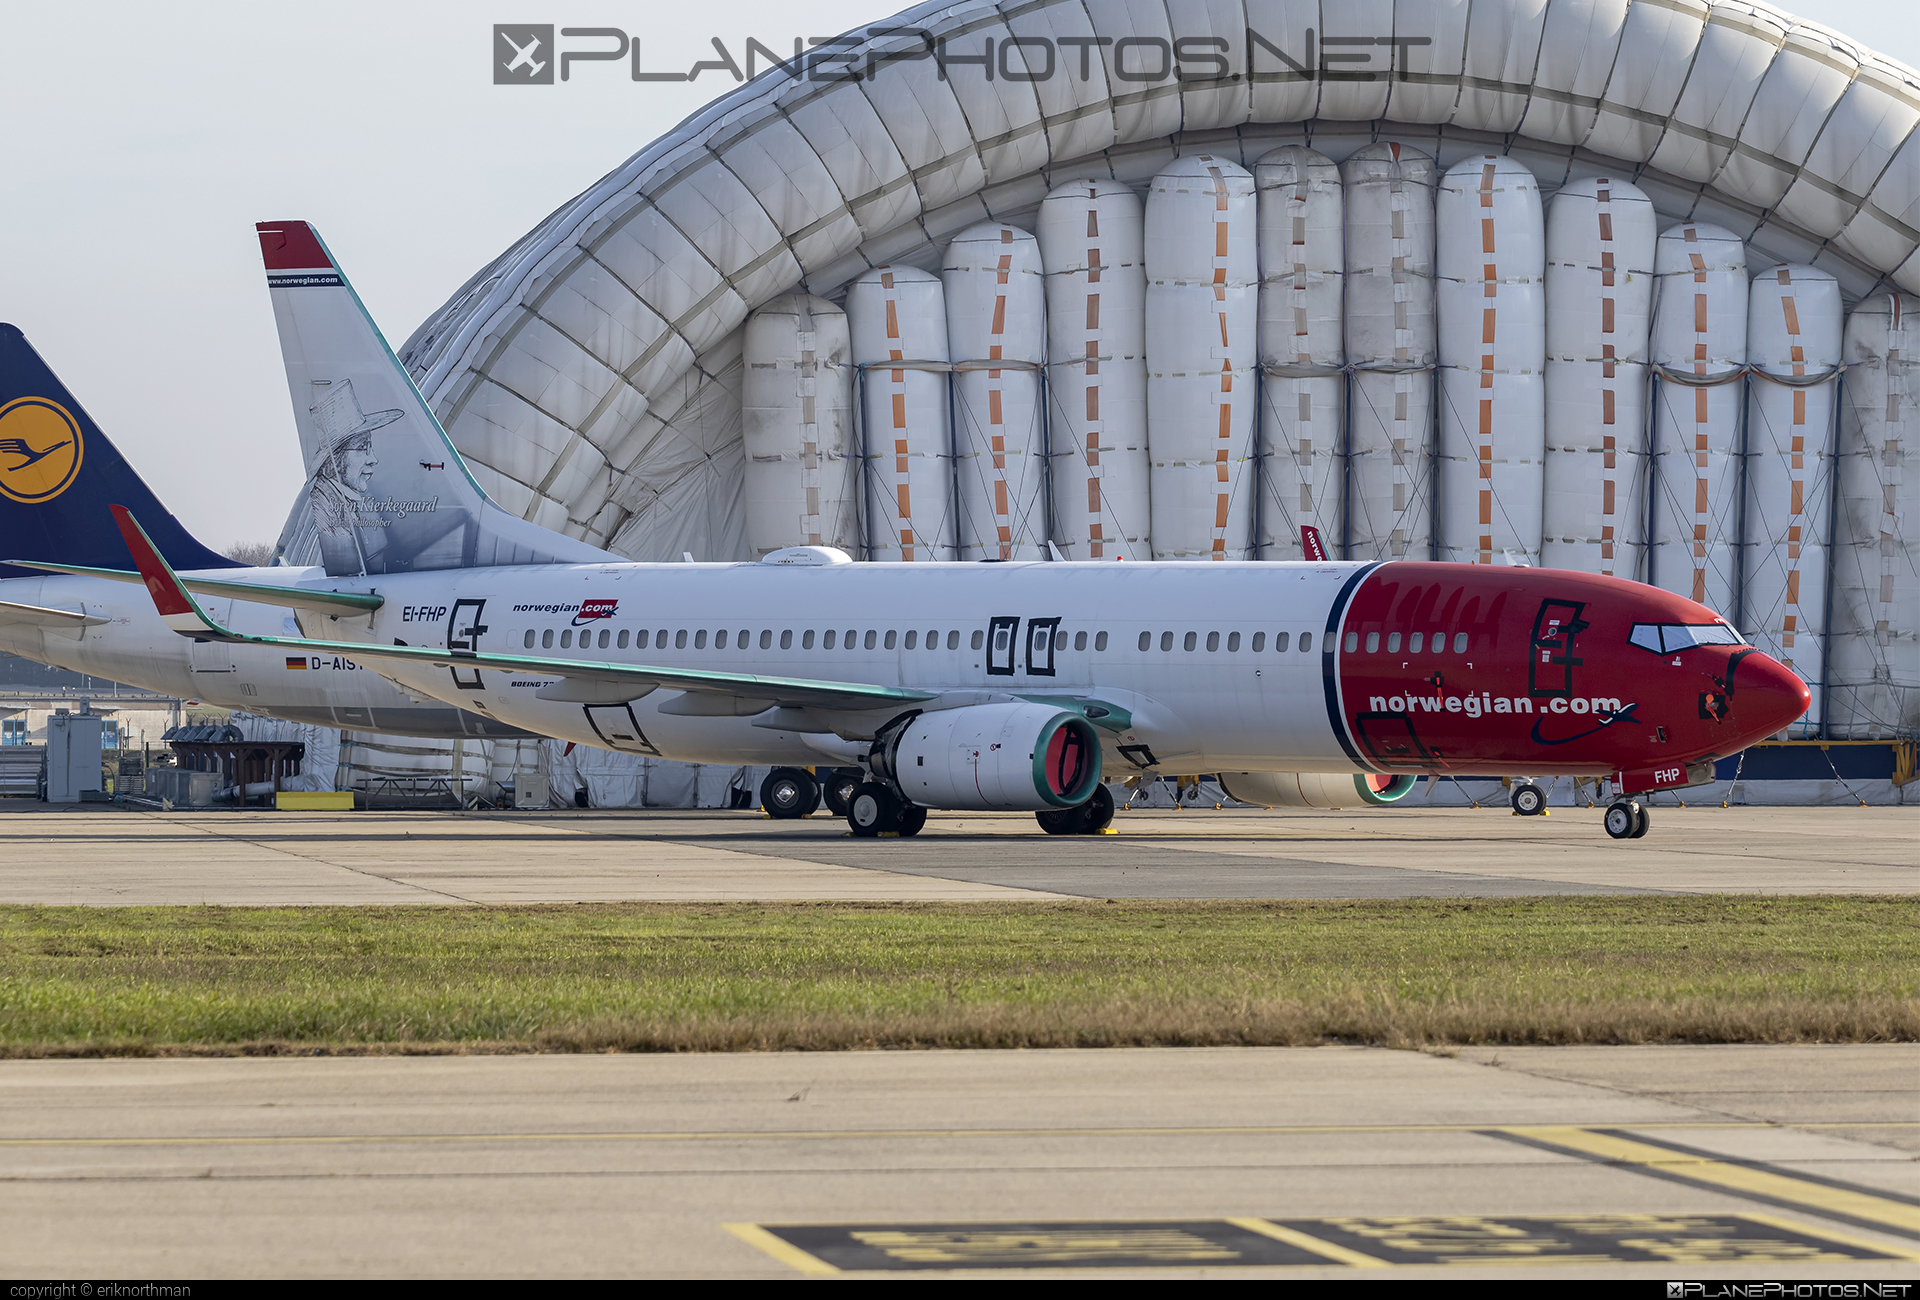 Boeing 737-800 - EI-FHP operated by Norwegian Air International #b737 #b737nextgen #b737ng #boeing #boeing737 #norwegian #norwegianair #norwegianairinternational